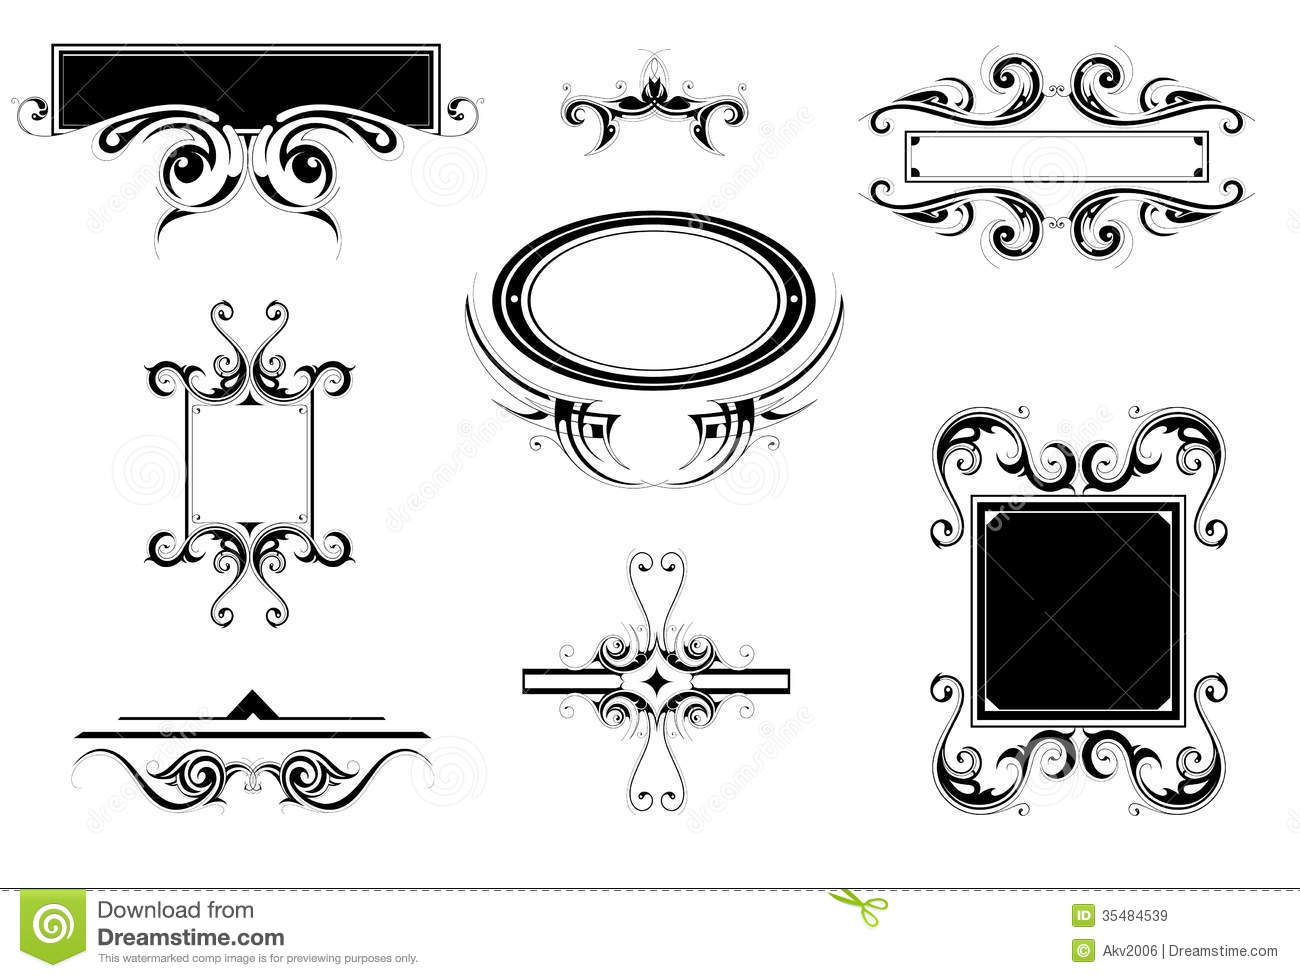 Vintage ornaments stock vector. Illustration of curves